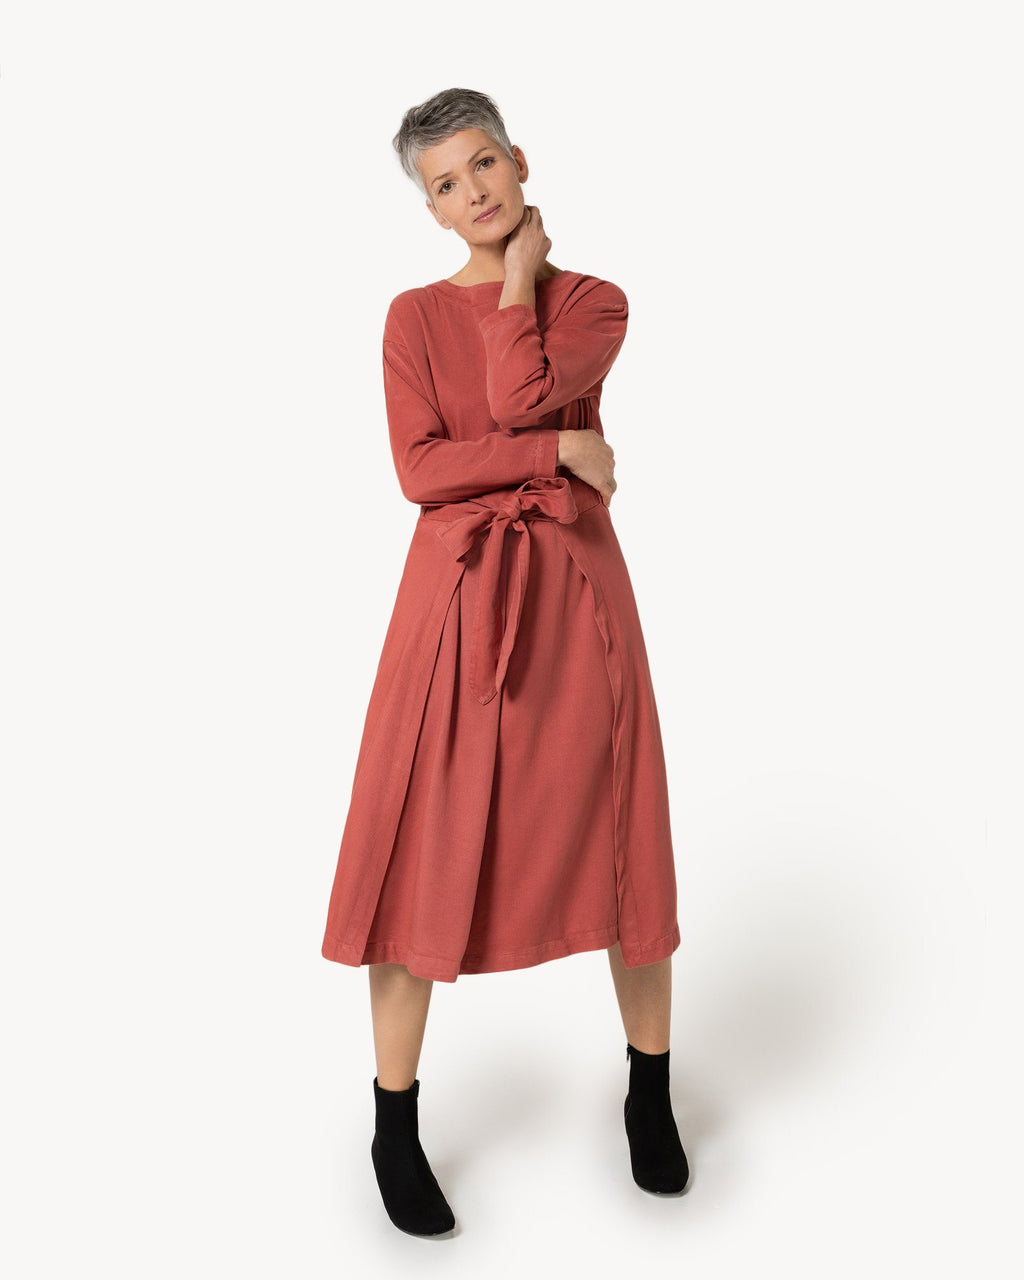 variant_1 | EN Red Dress Longsleeve Women Suite13 | DE Rotes Kleid Lange Ärmel Damen Suite13